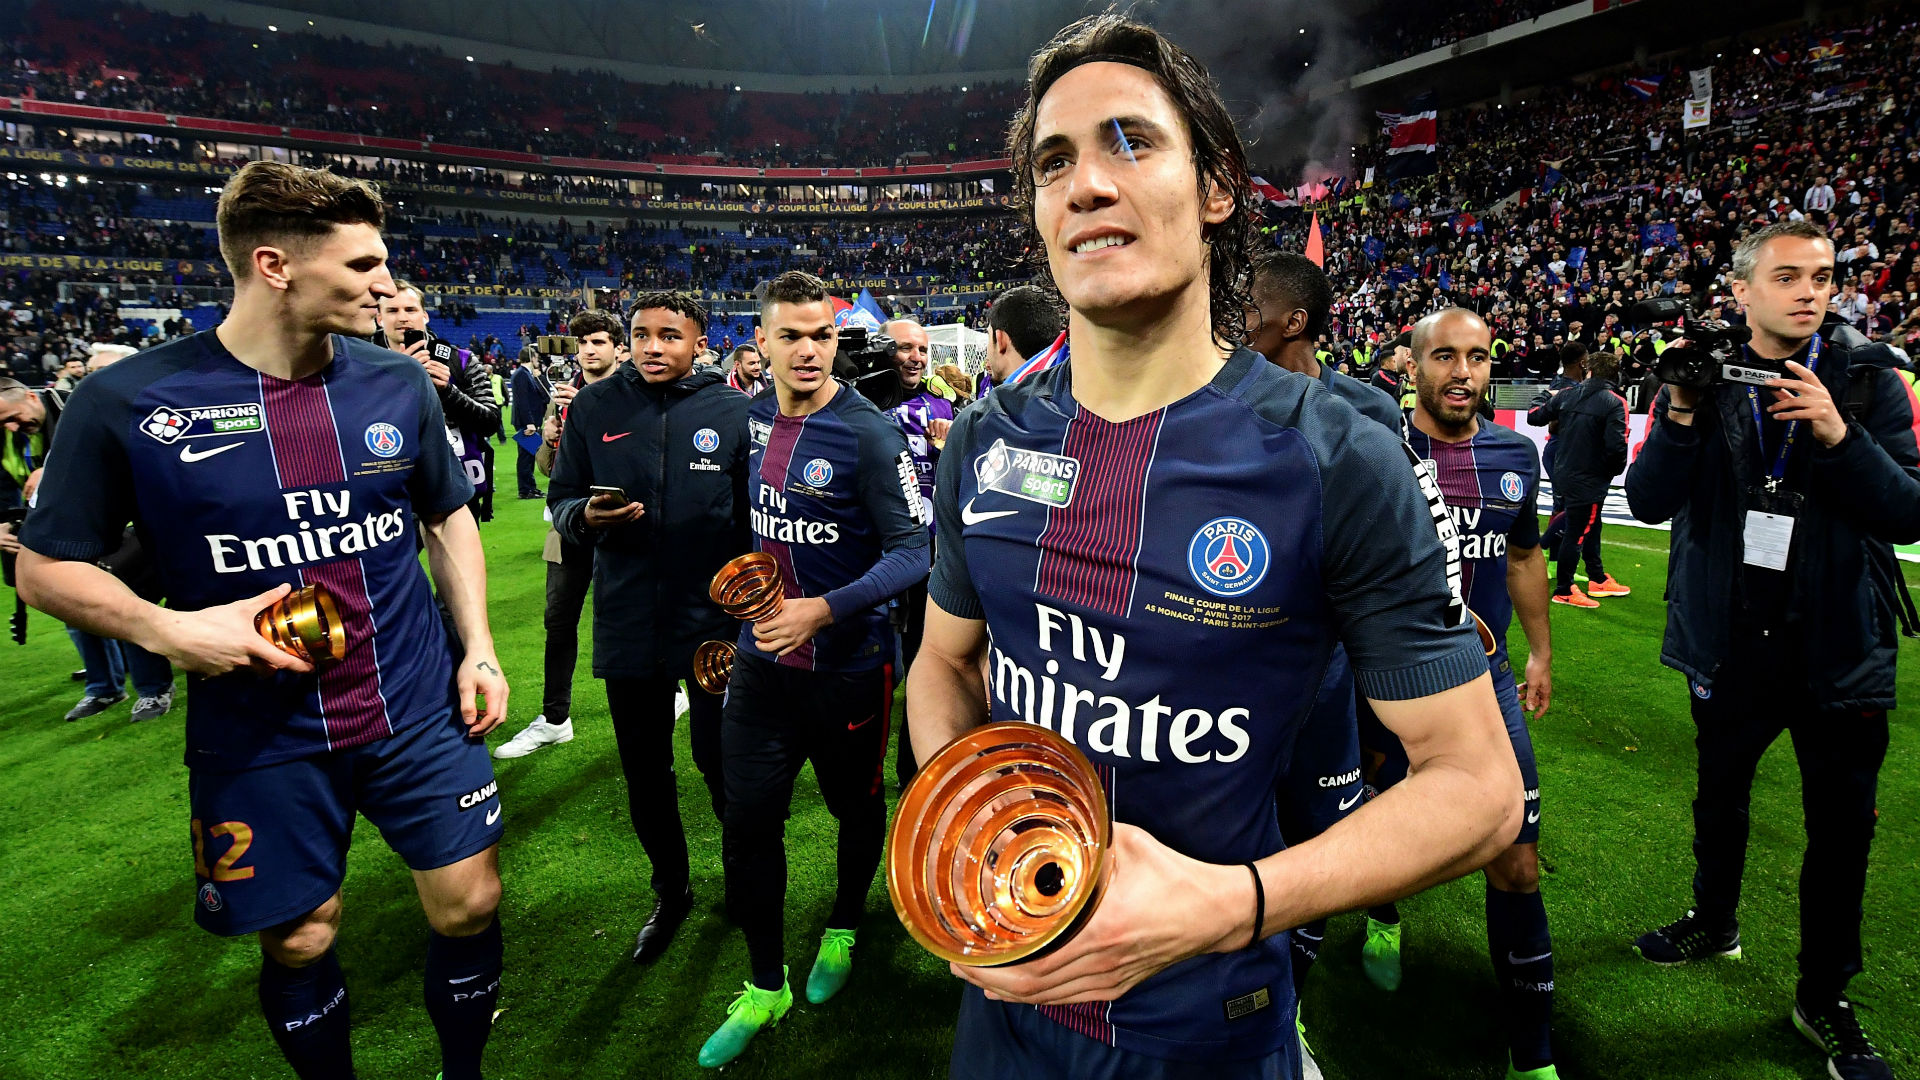 Paris saint germain v angers coupe de france betting cornered giants to respond in front of - Coupe de france predictions ...